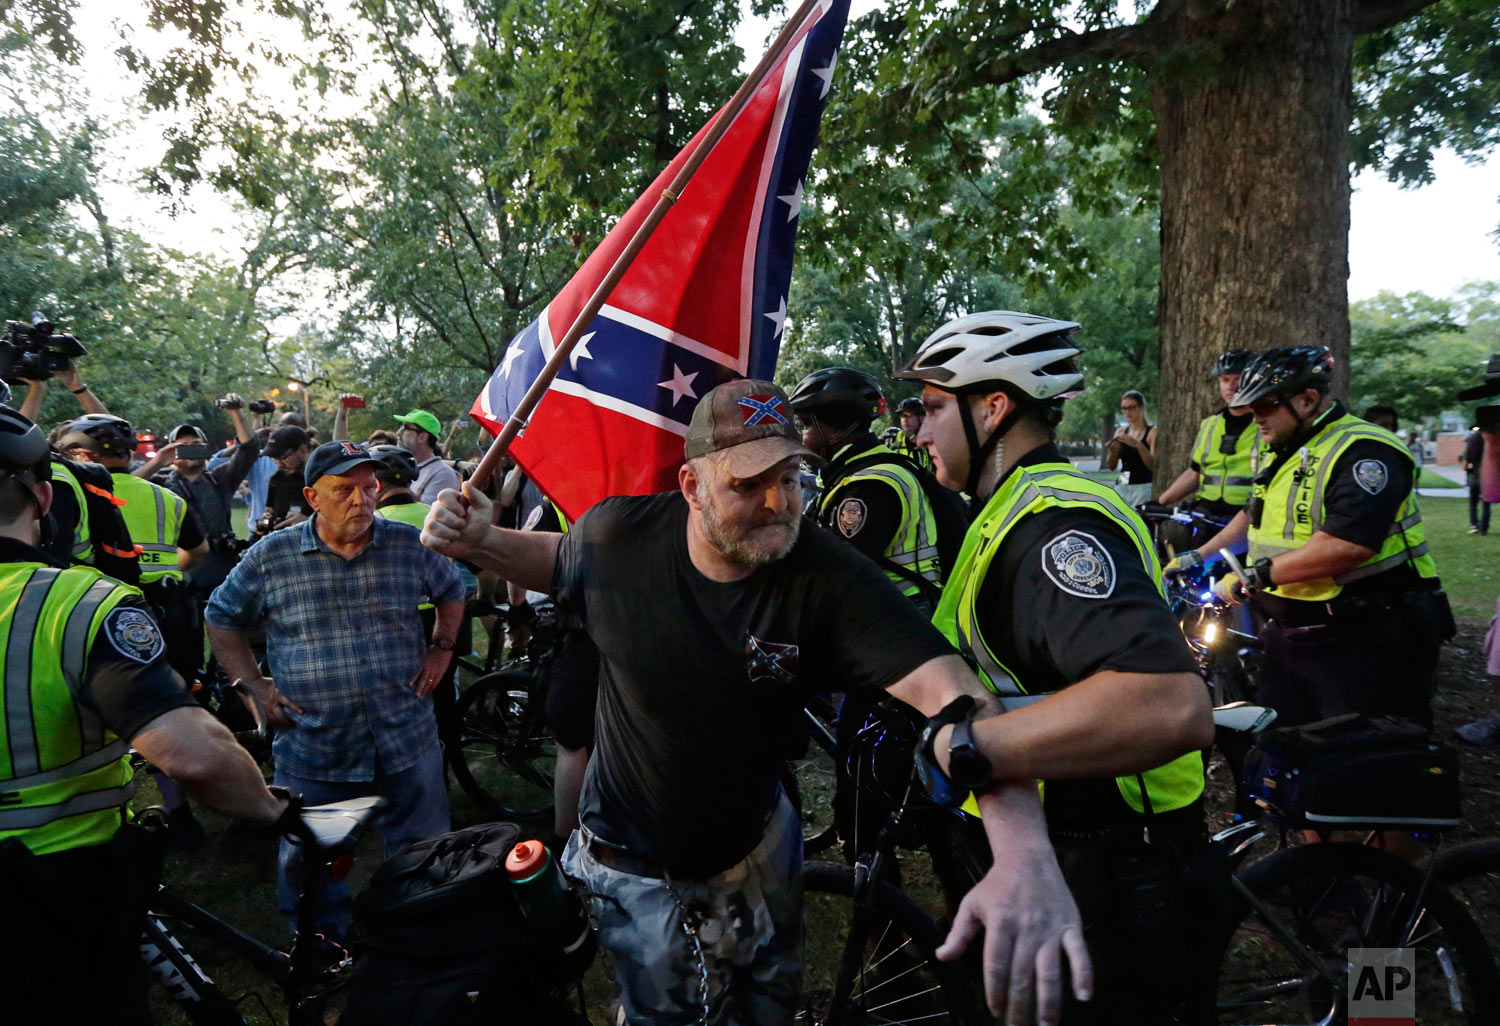 """A police officer grabs a man holding a Confederate flag during a rally for the recently vandalized Confederate monument known as """"Silent Sam"""" at the University of North Carolina in Chapel Hill, N.C., Thursday, Aug. 30, 2018. (AP Photo/Gerry Broome)"""